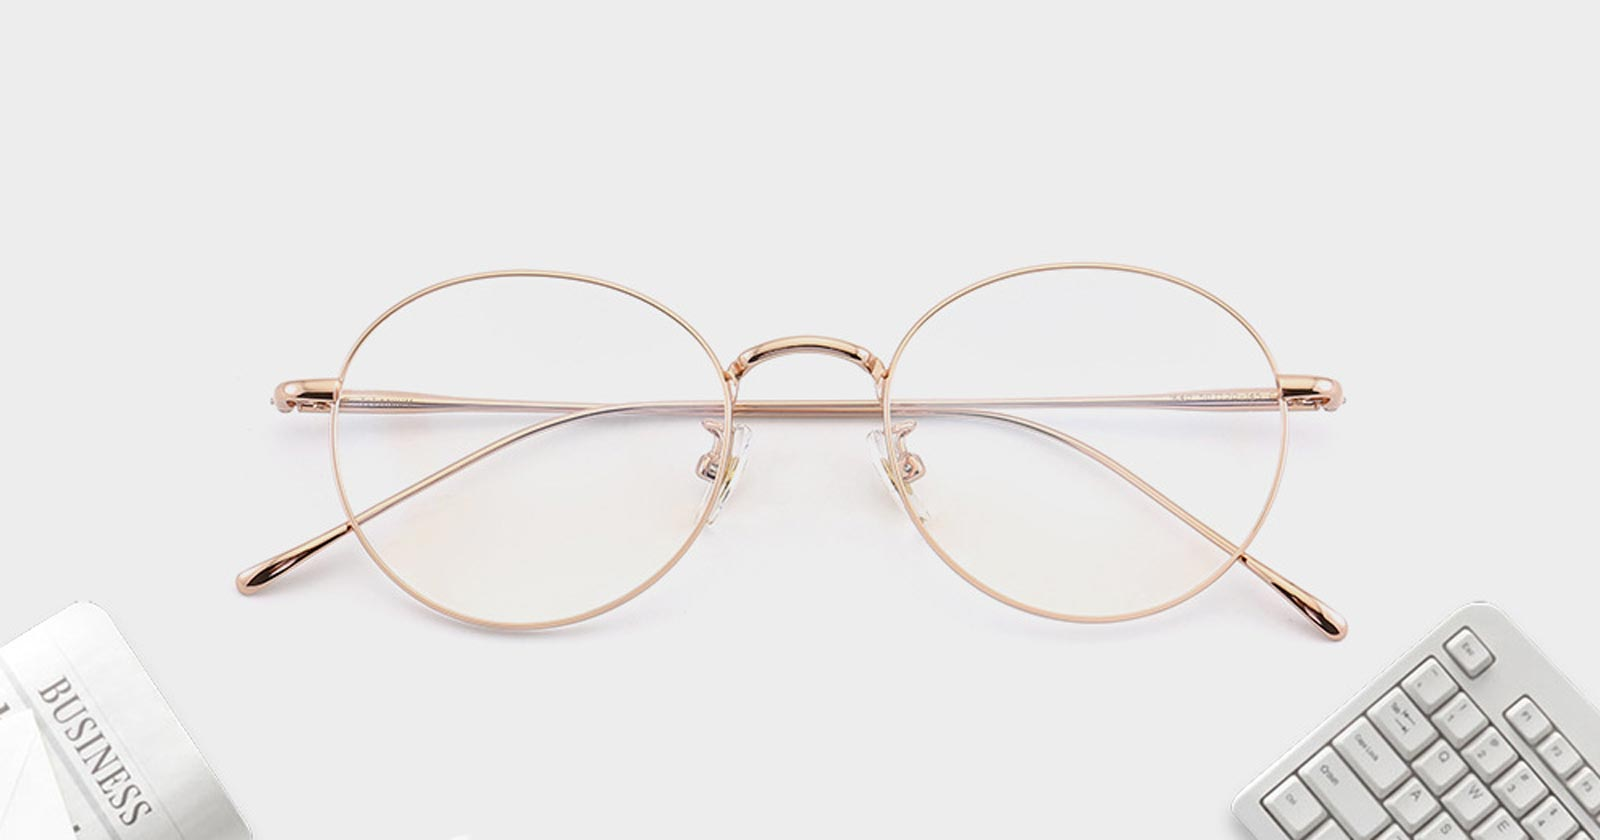 The Development of Round Frame Glasses